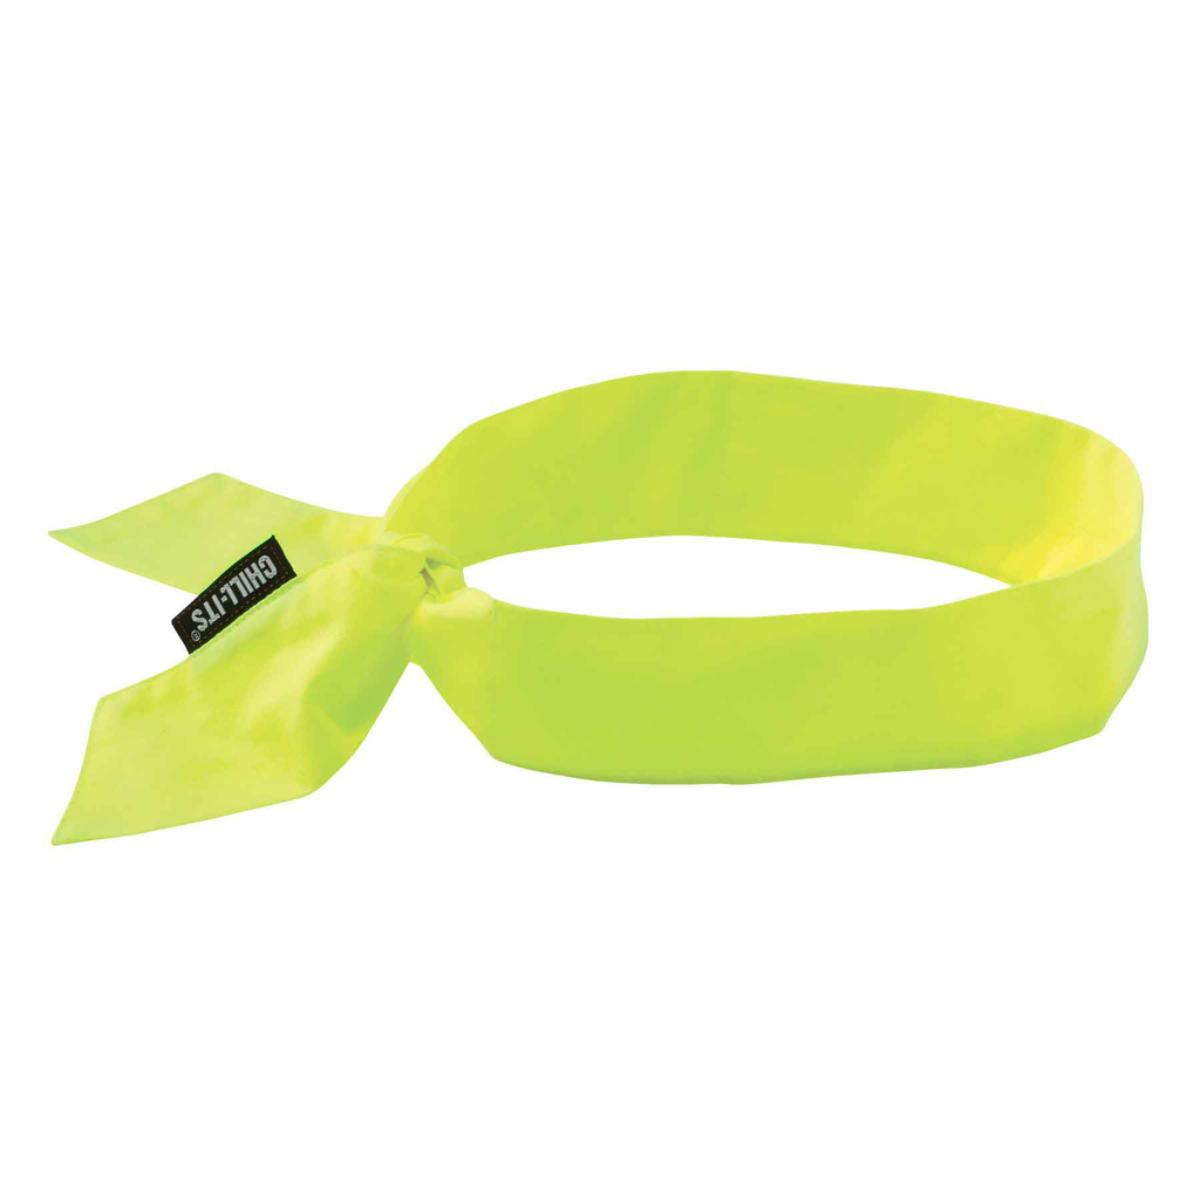 6700  Stars & Stripes Evaporative Cooling Bandana - Tie